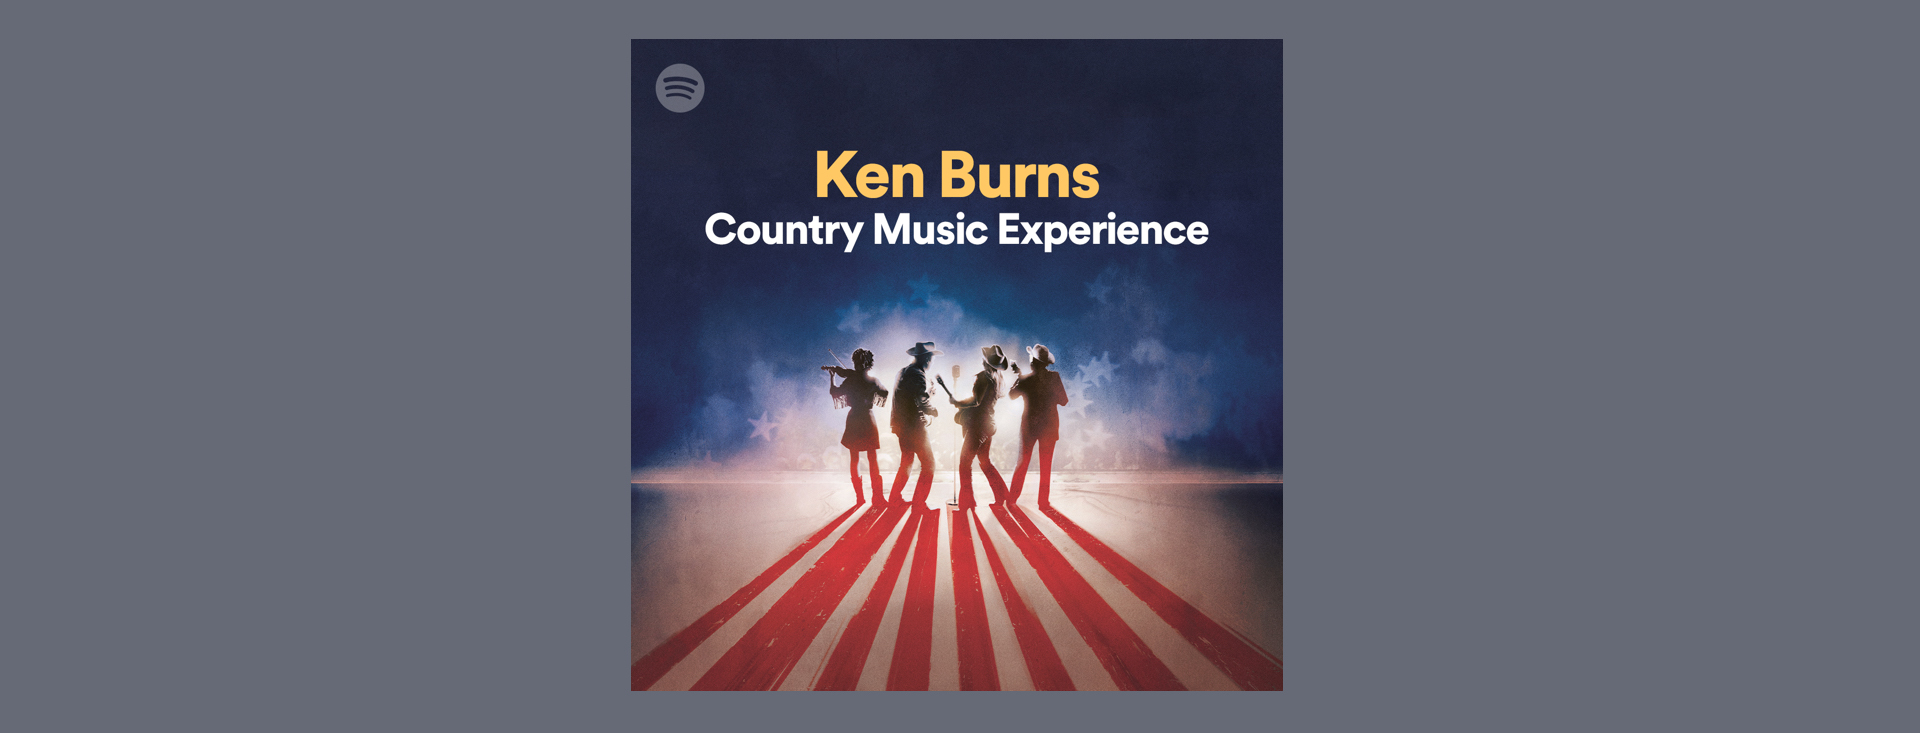 Ken Burns 'COUNTRY MUSIC' Enhanced Playlist Experience Comes